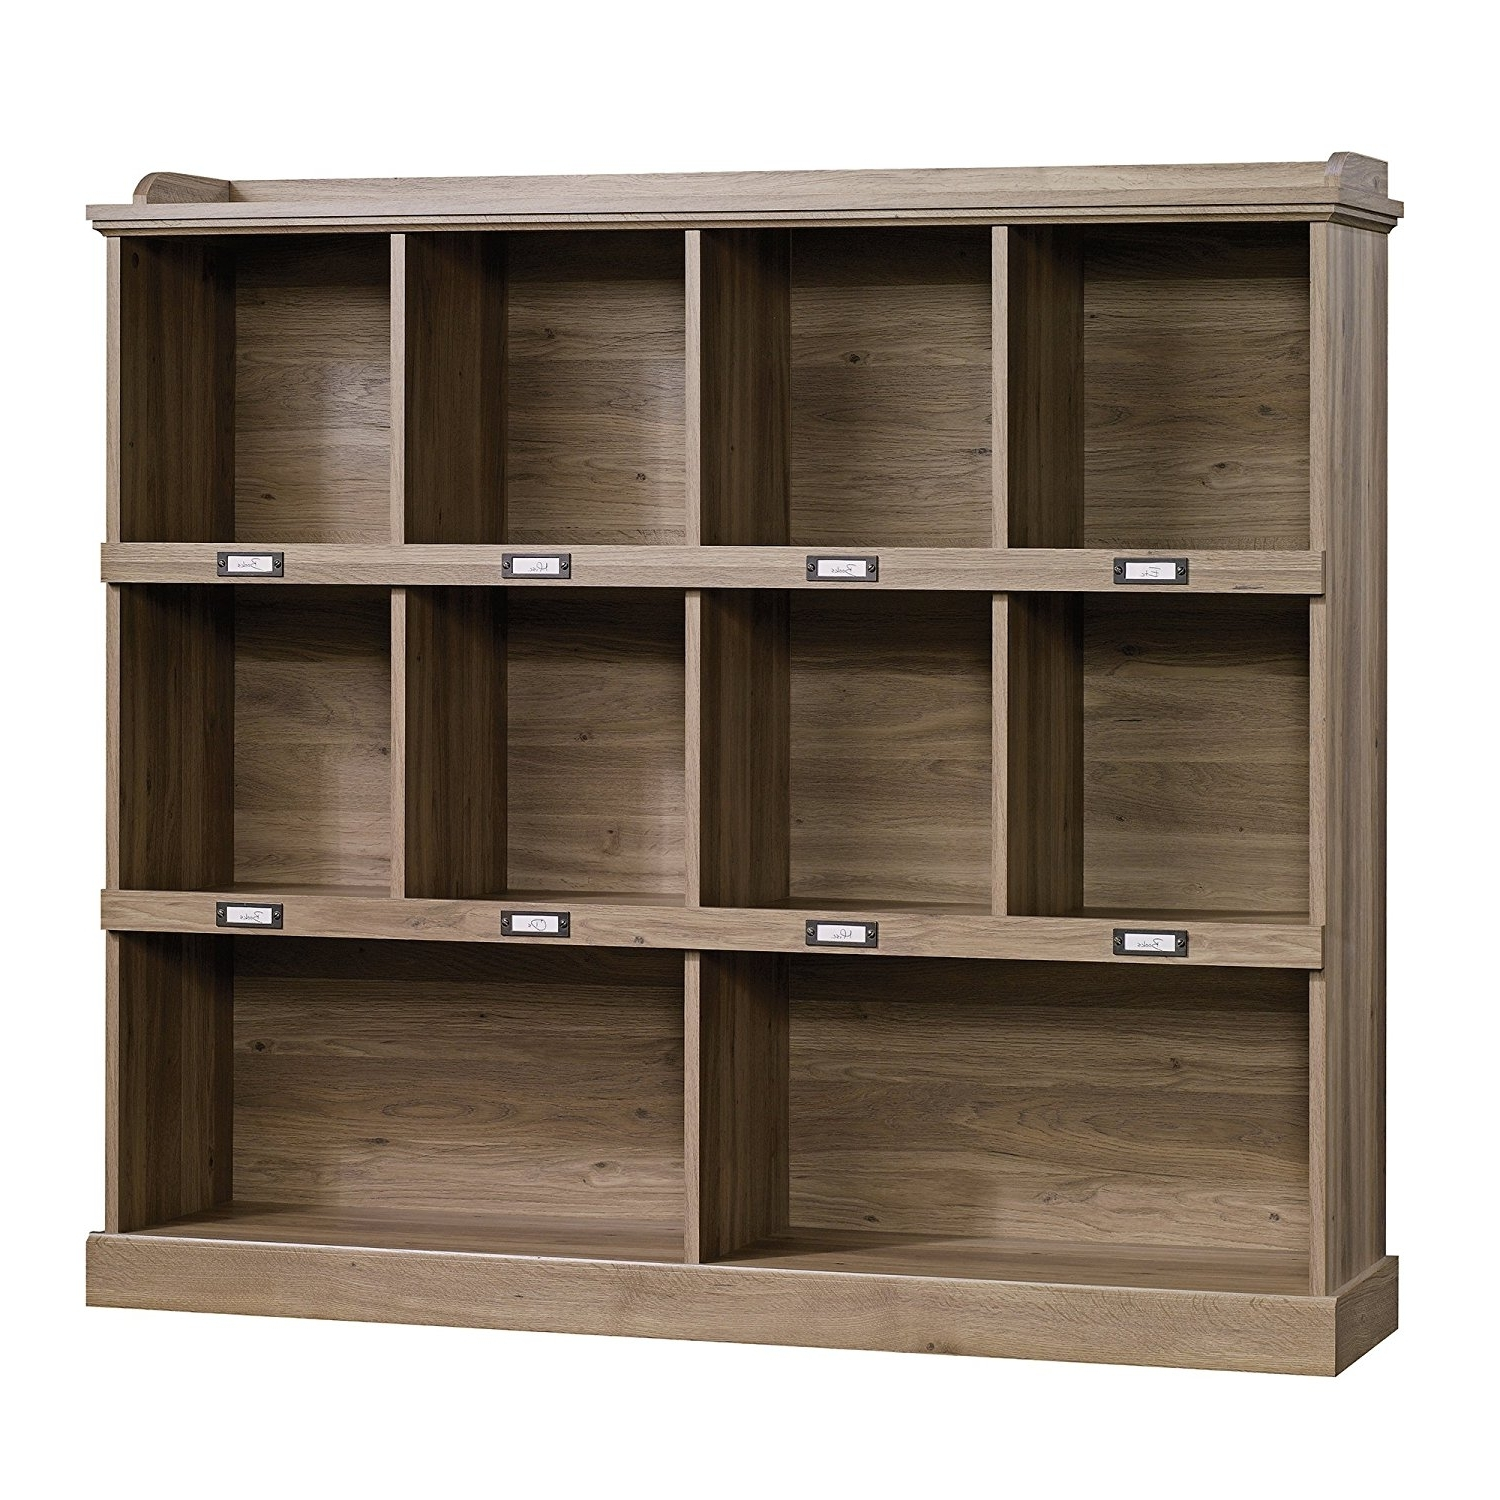 Well Liked Barrister Lane Bookcases Regarding Amazon: Sauder Barrister Lane Bookcase In Salt Oak: Kitchen (View 15 of 15)